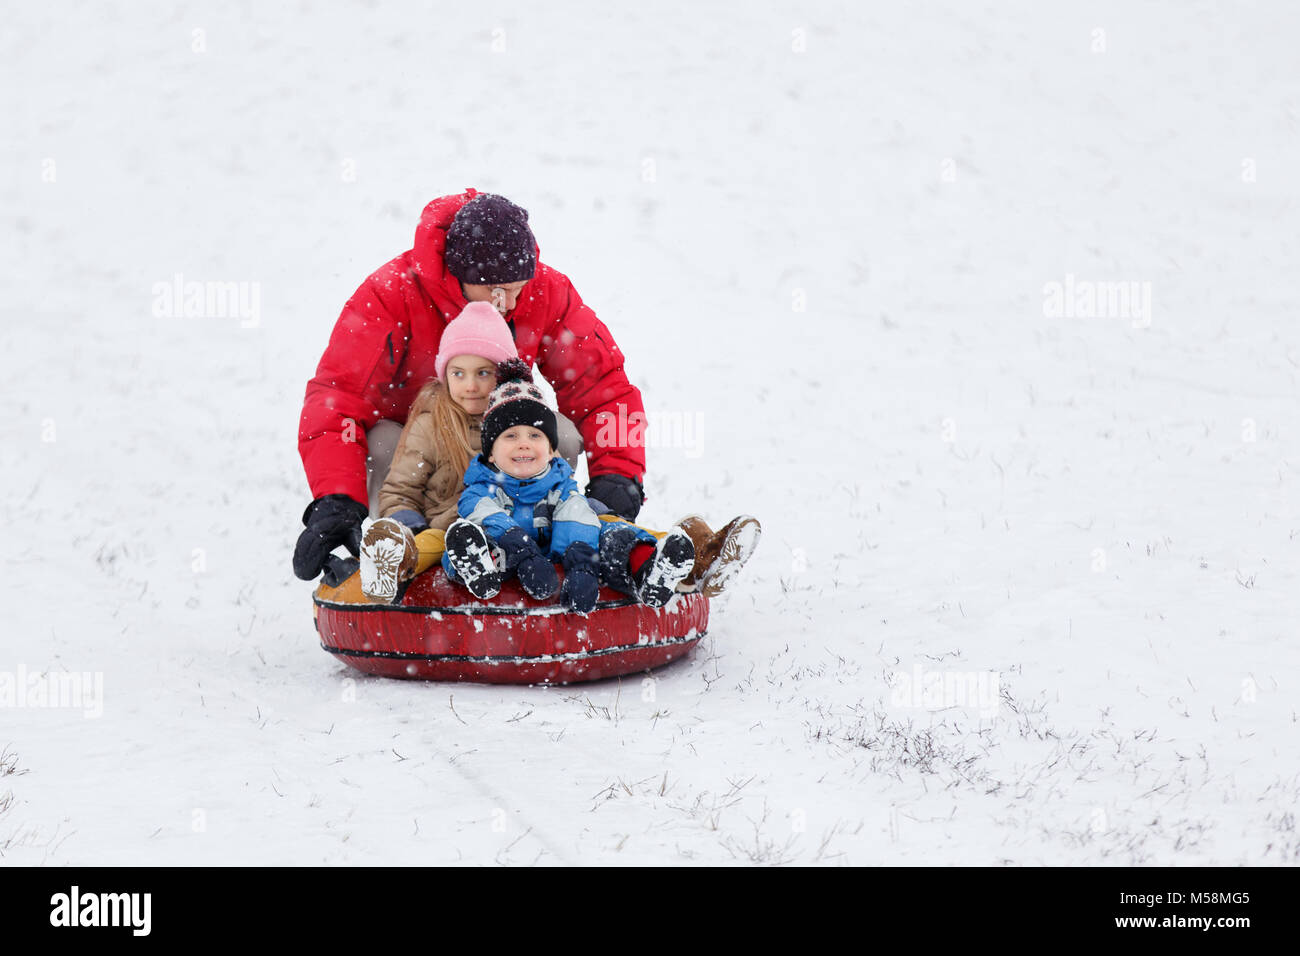 Photo of happy father, daughter and son on tubing in winter park - Stock Image